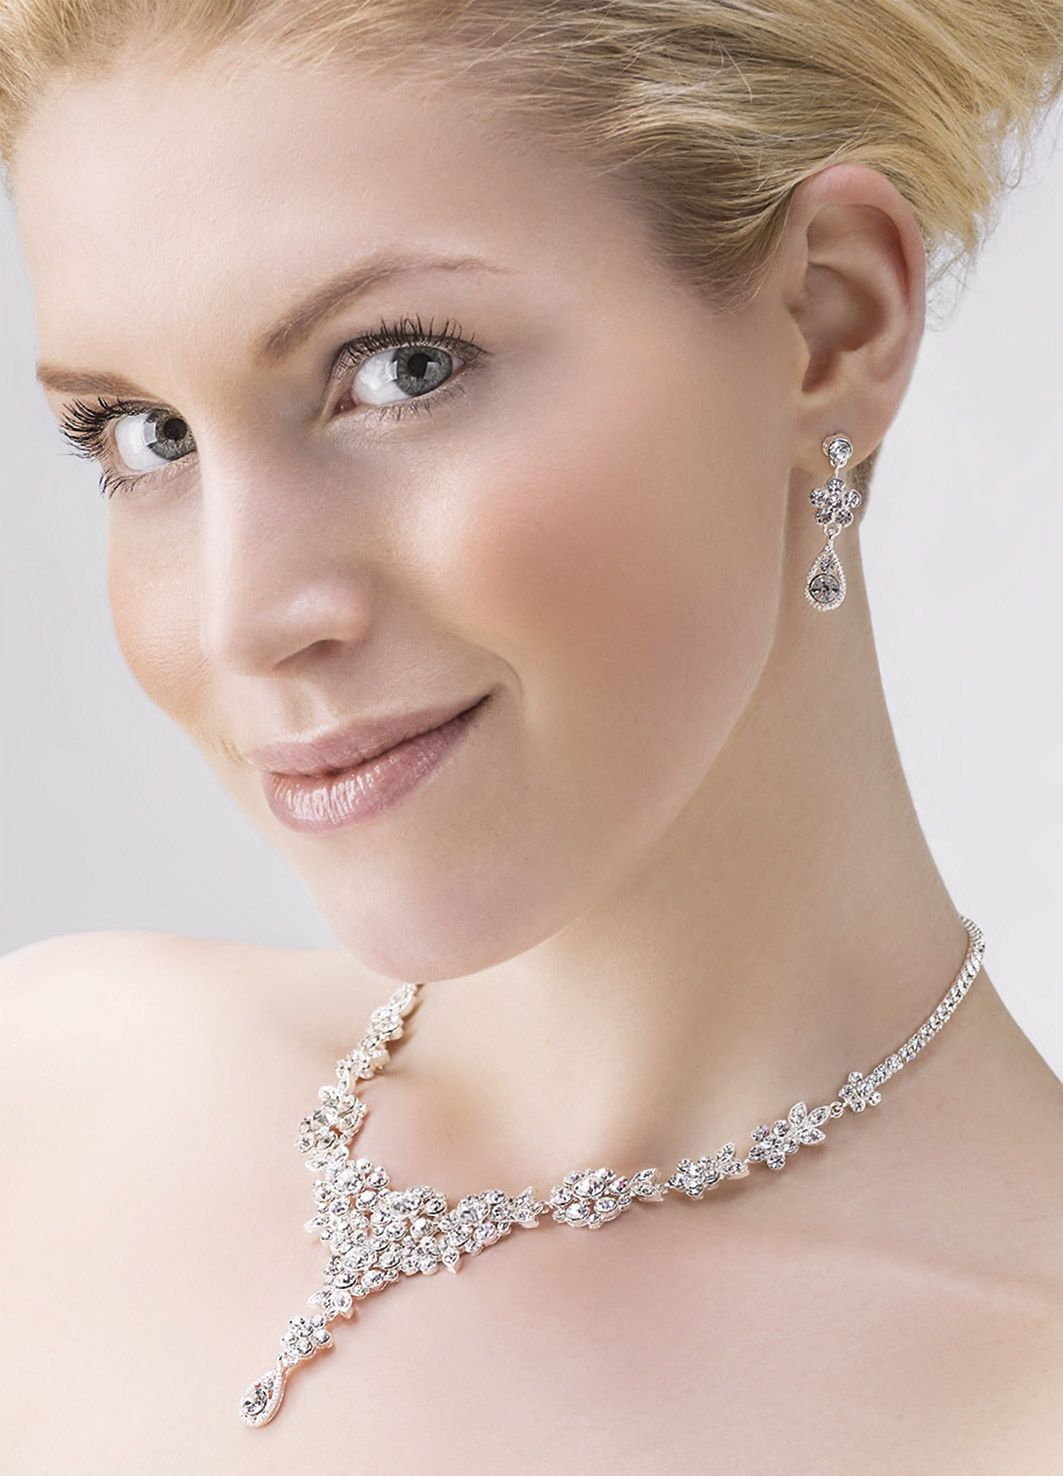 Eye-catching crystal jewellery set - sparkling and glamorous! (66212)